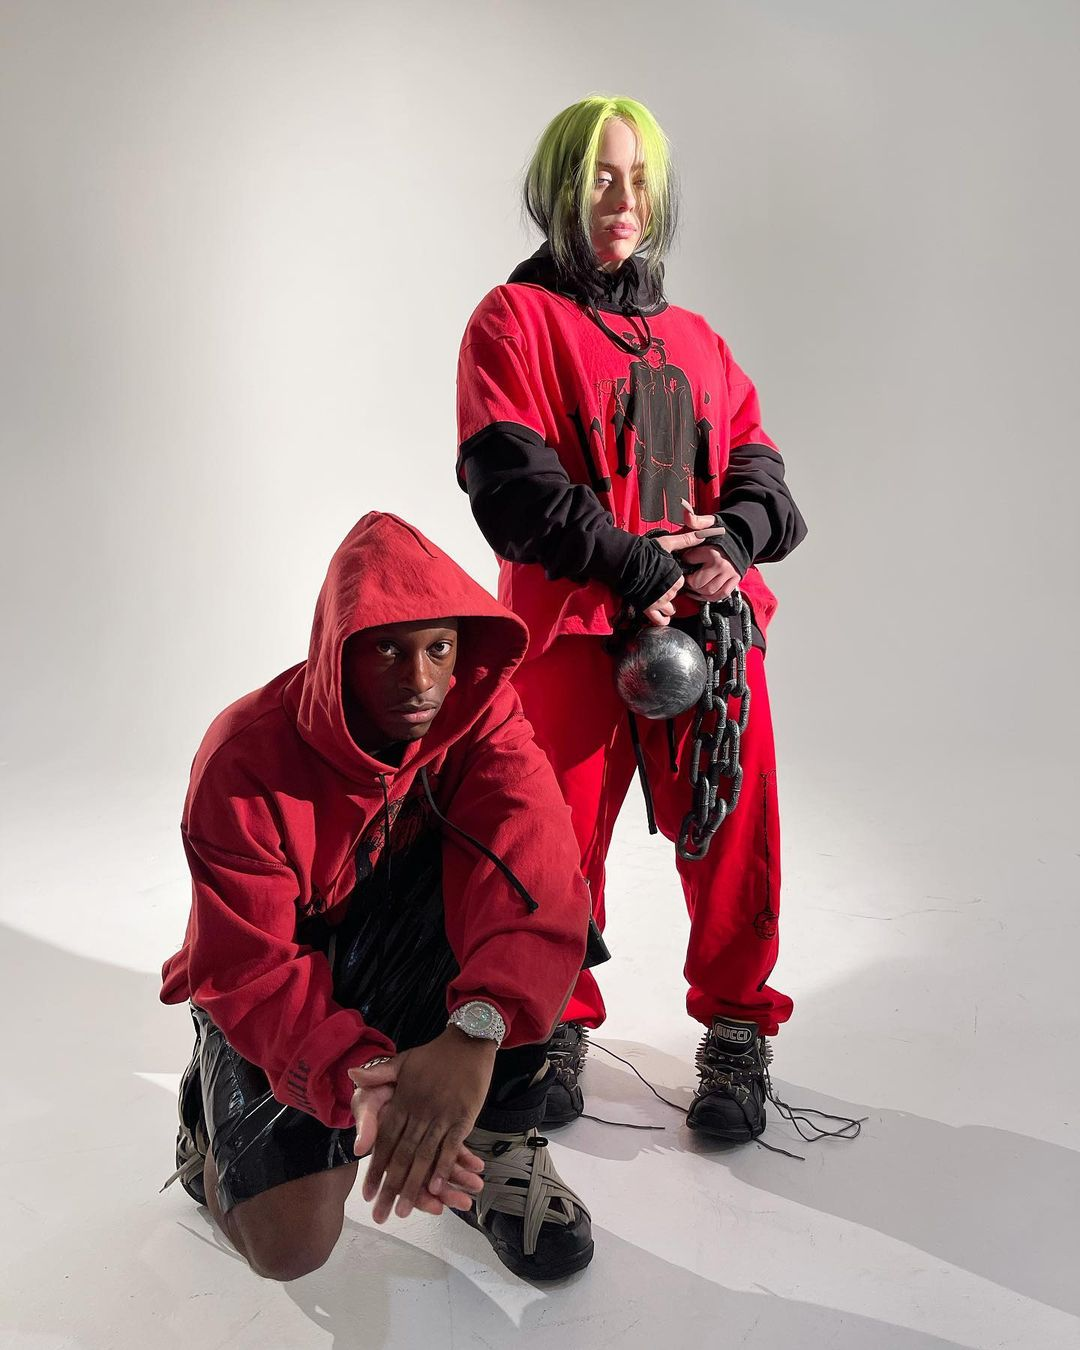 SPOTTED: Bloody Osiris Styles Billie Eilish for New Documentary Stills